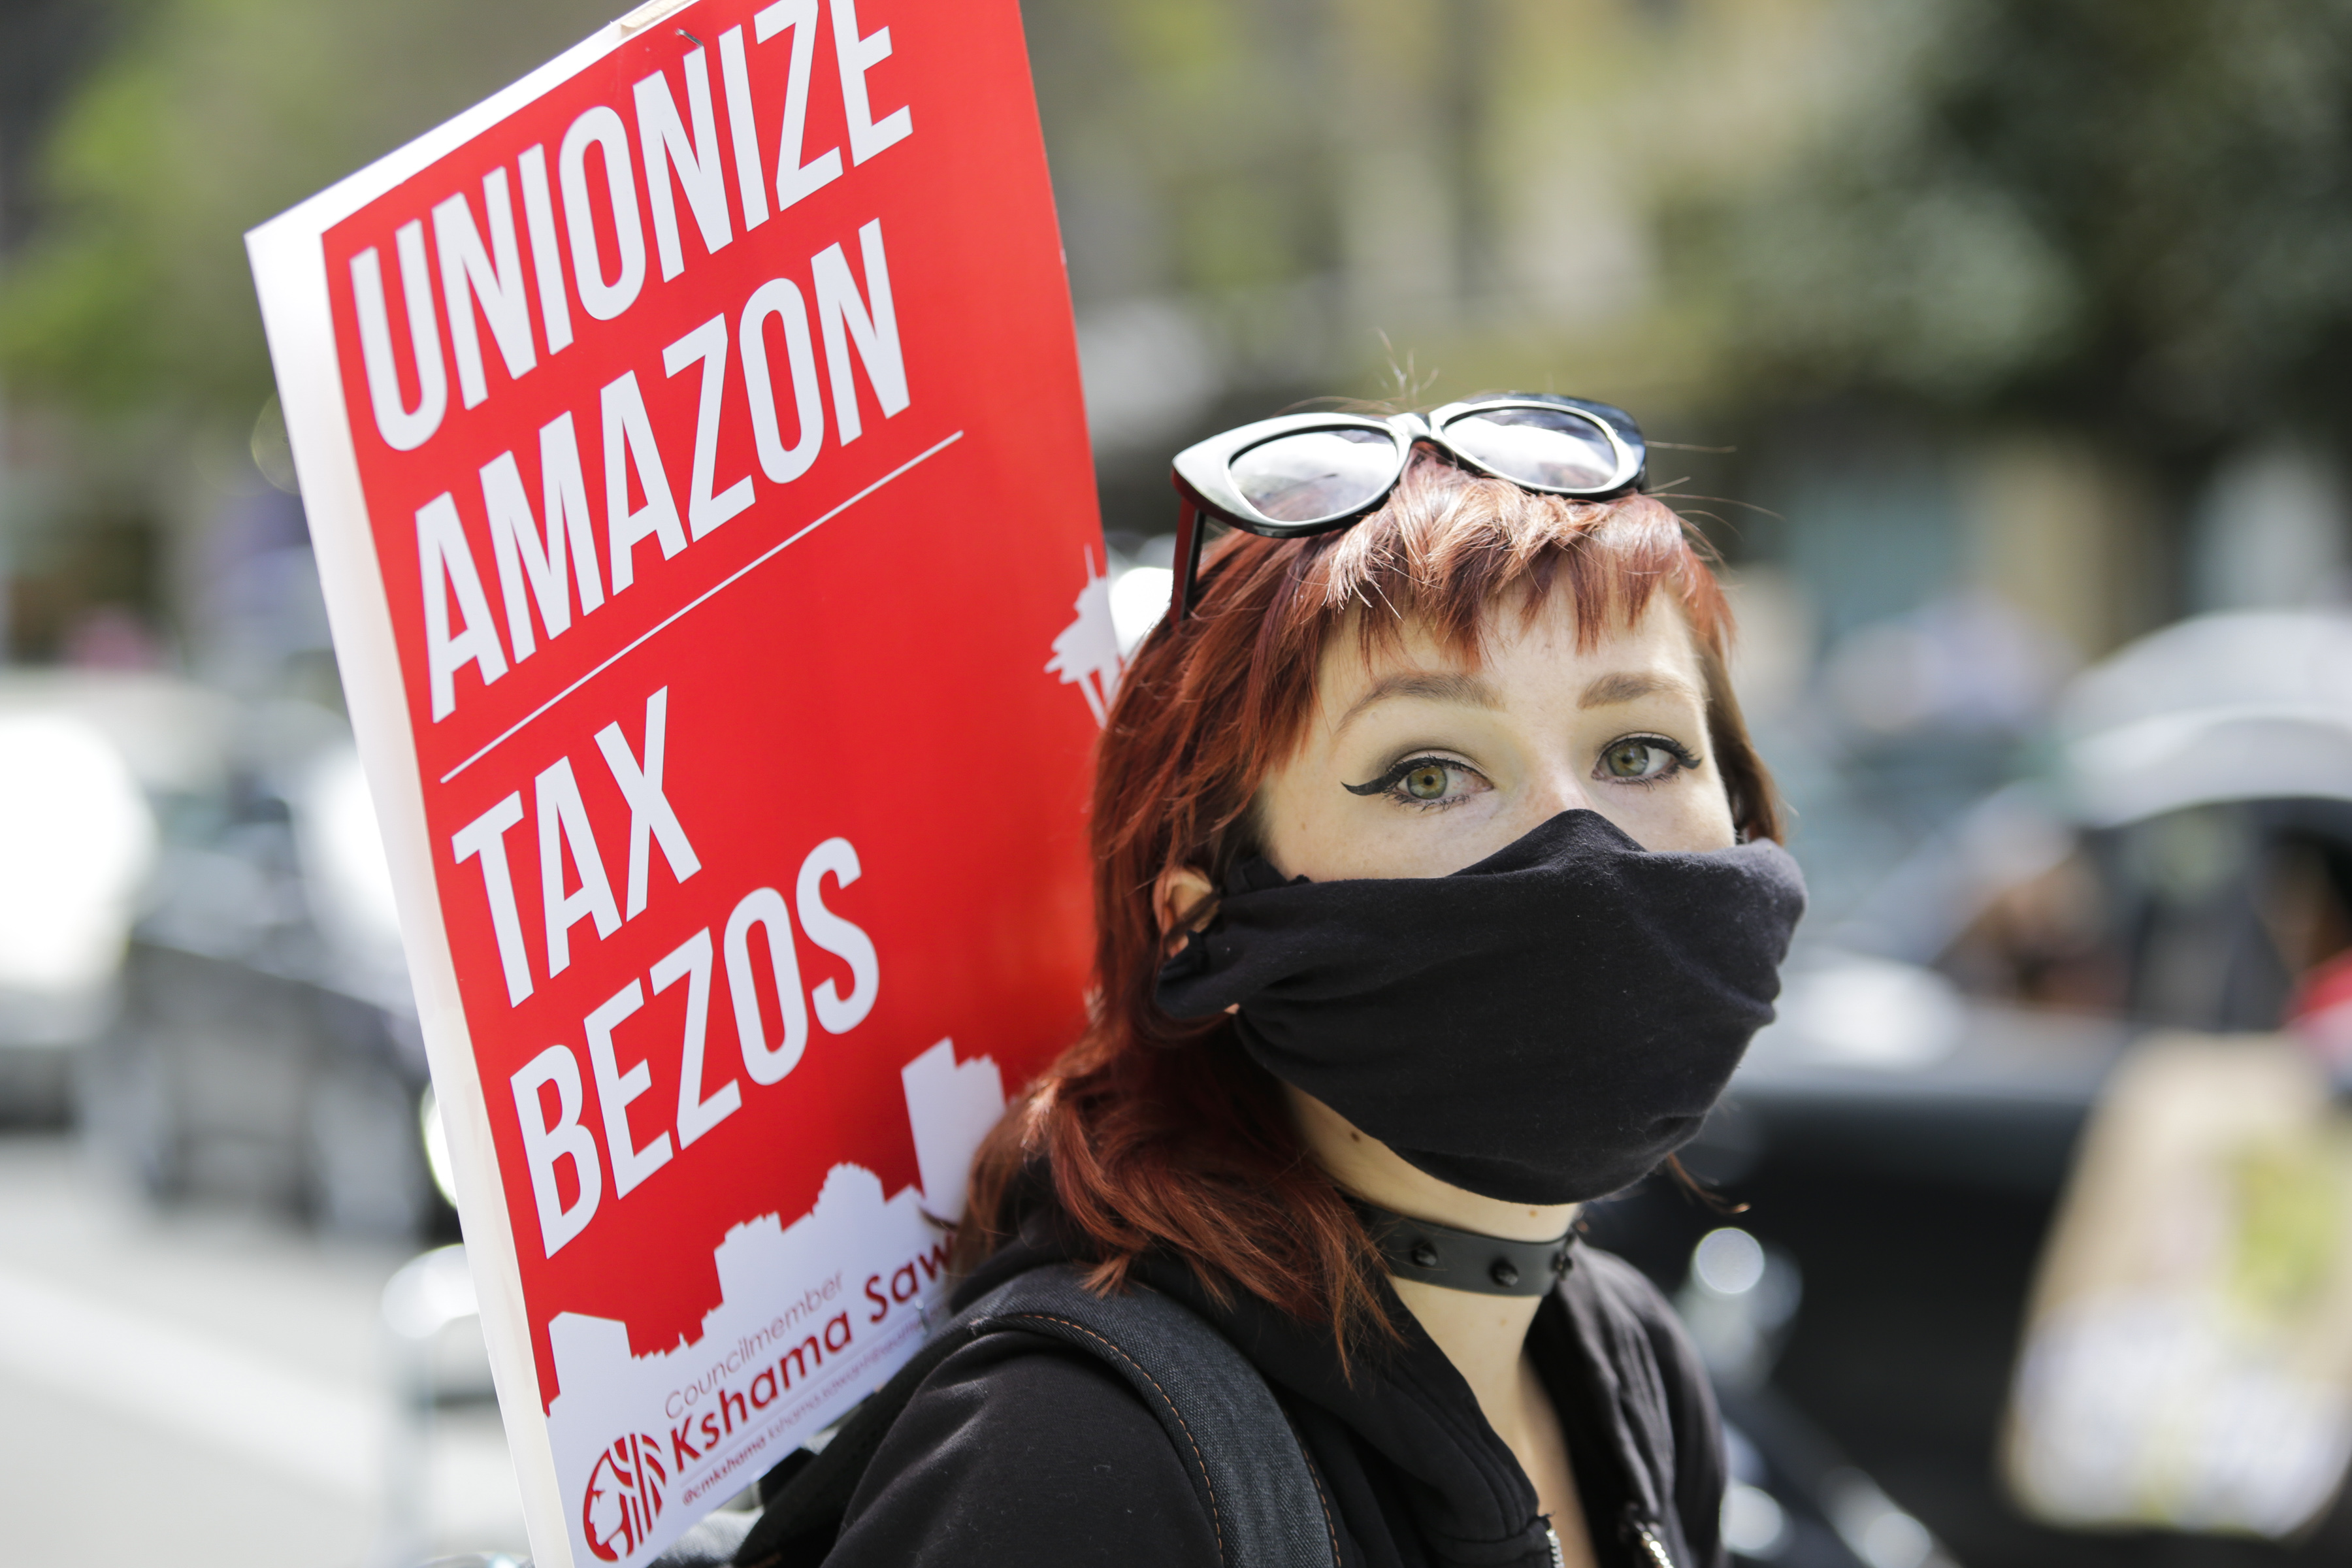 """A protester in a breathing mask carries a sign reading """"Unionize Amazon, tax Bezos."""""""